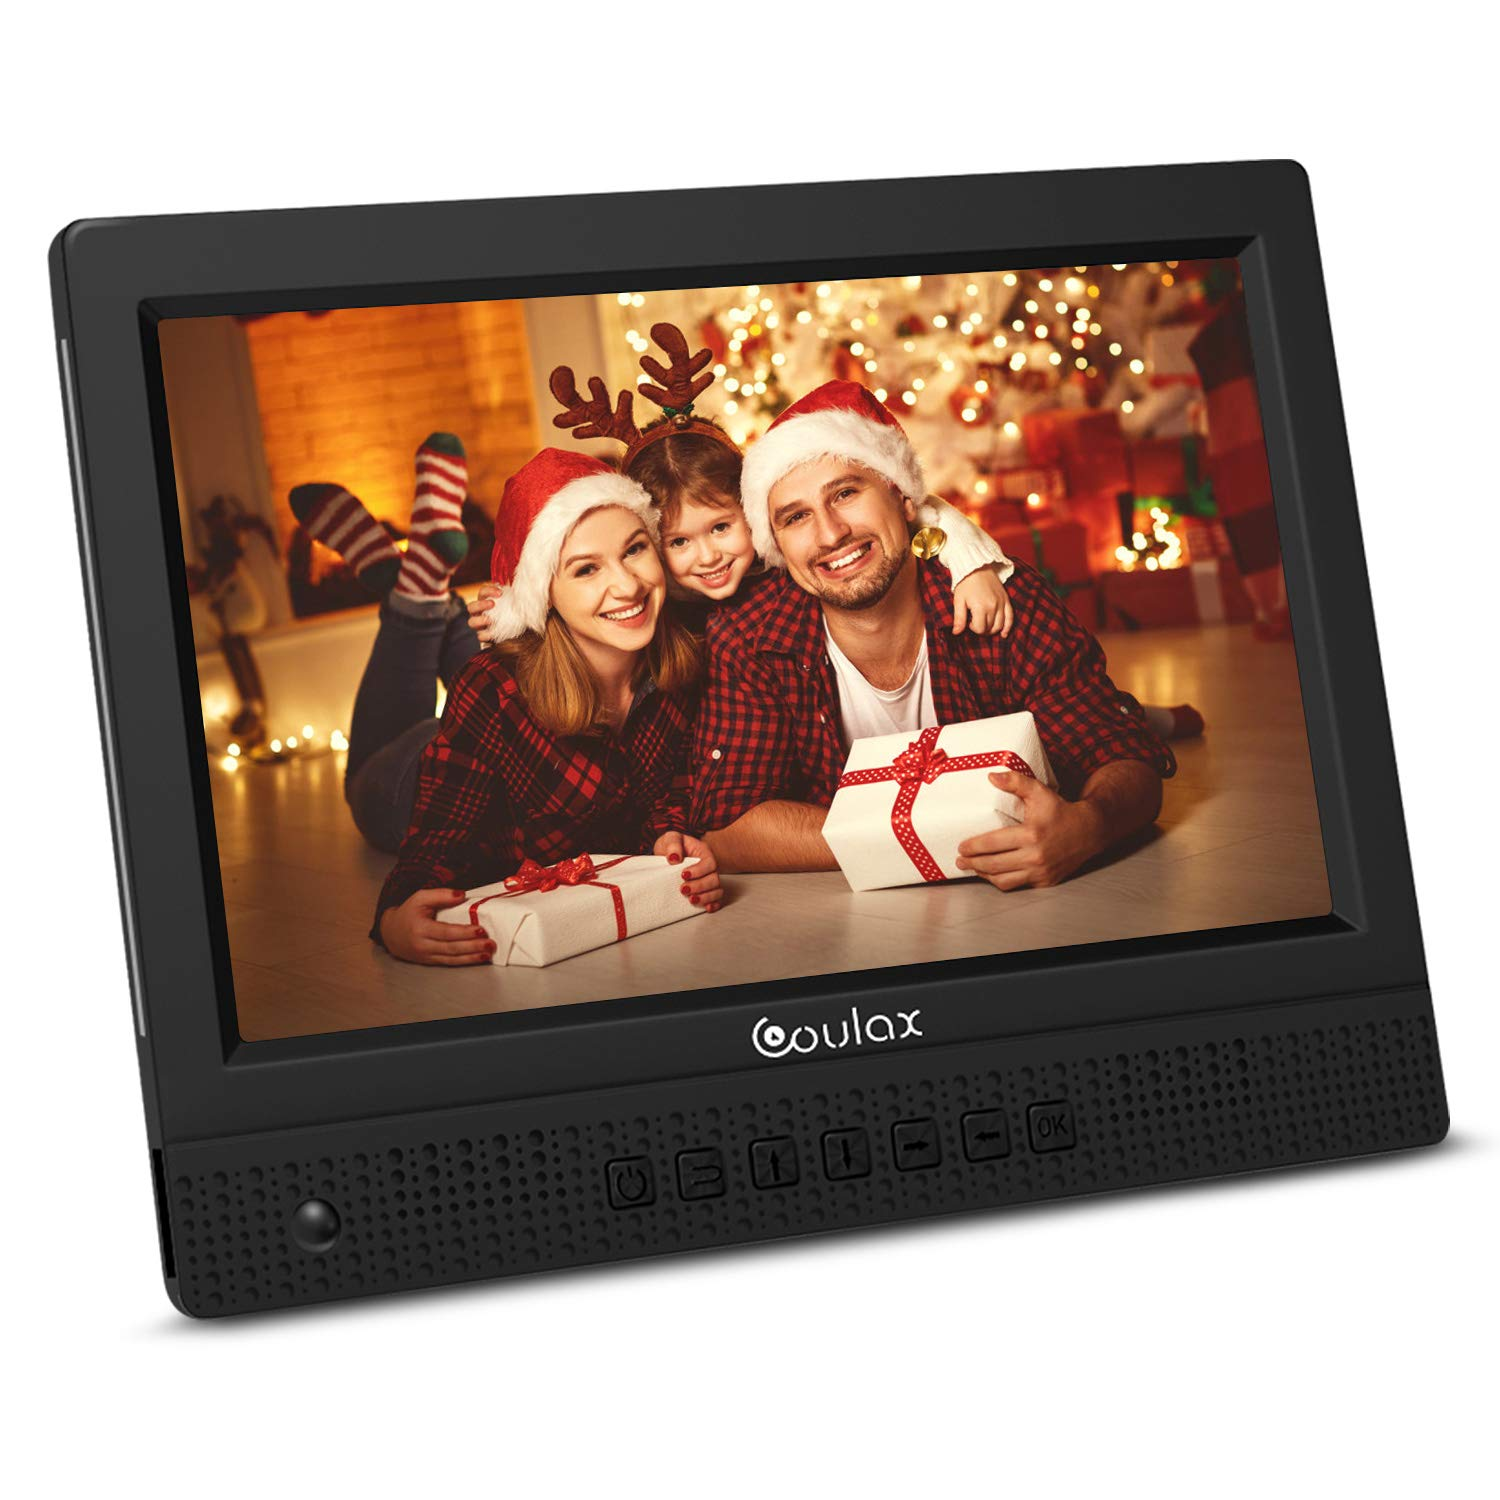 COULAX 10 inch Digital Photo Frame with HD IPS Display,Remote Control,360 Degree Rotate,Motion Sensor,Support Calendar Slideshow Mode Video Play Background Music